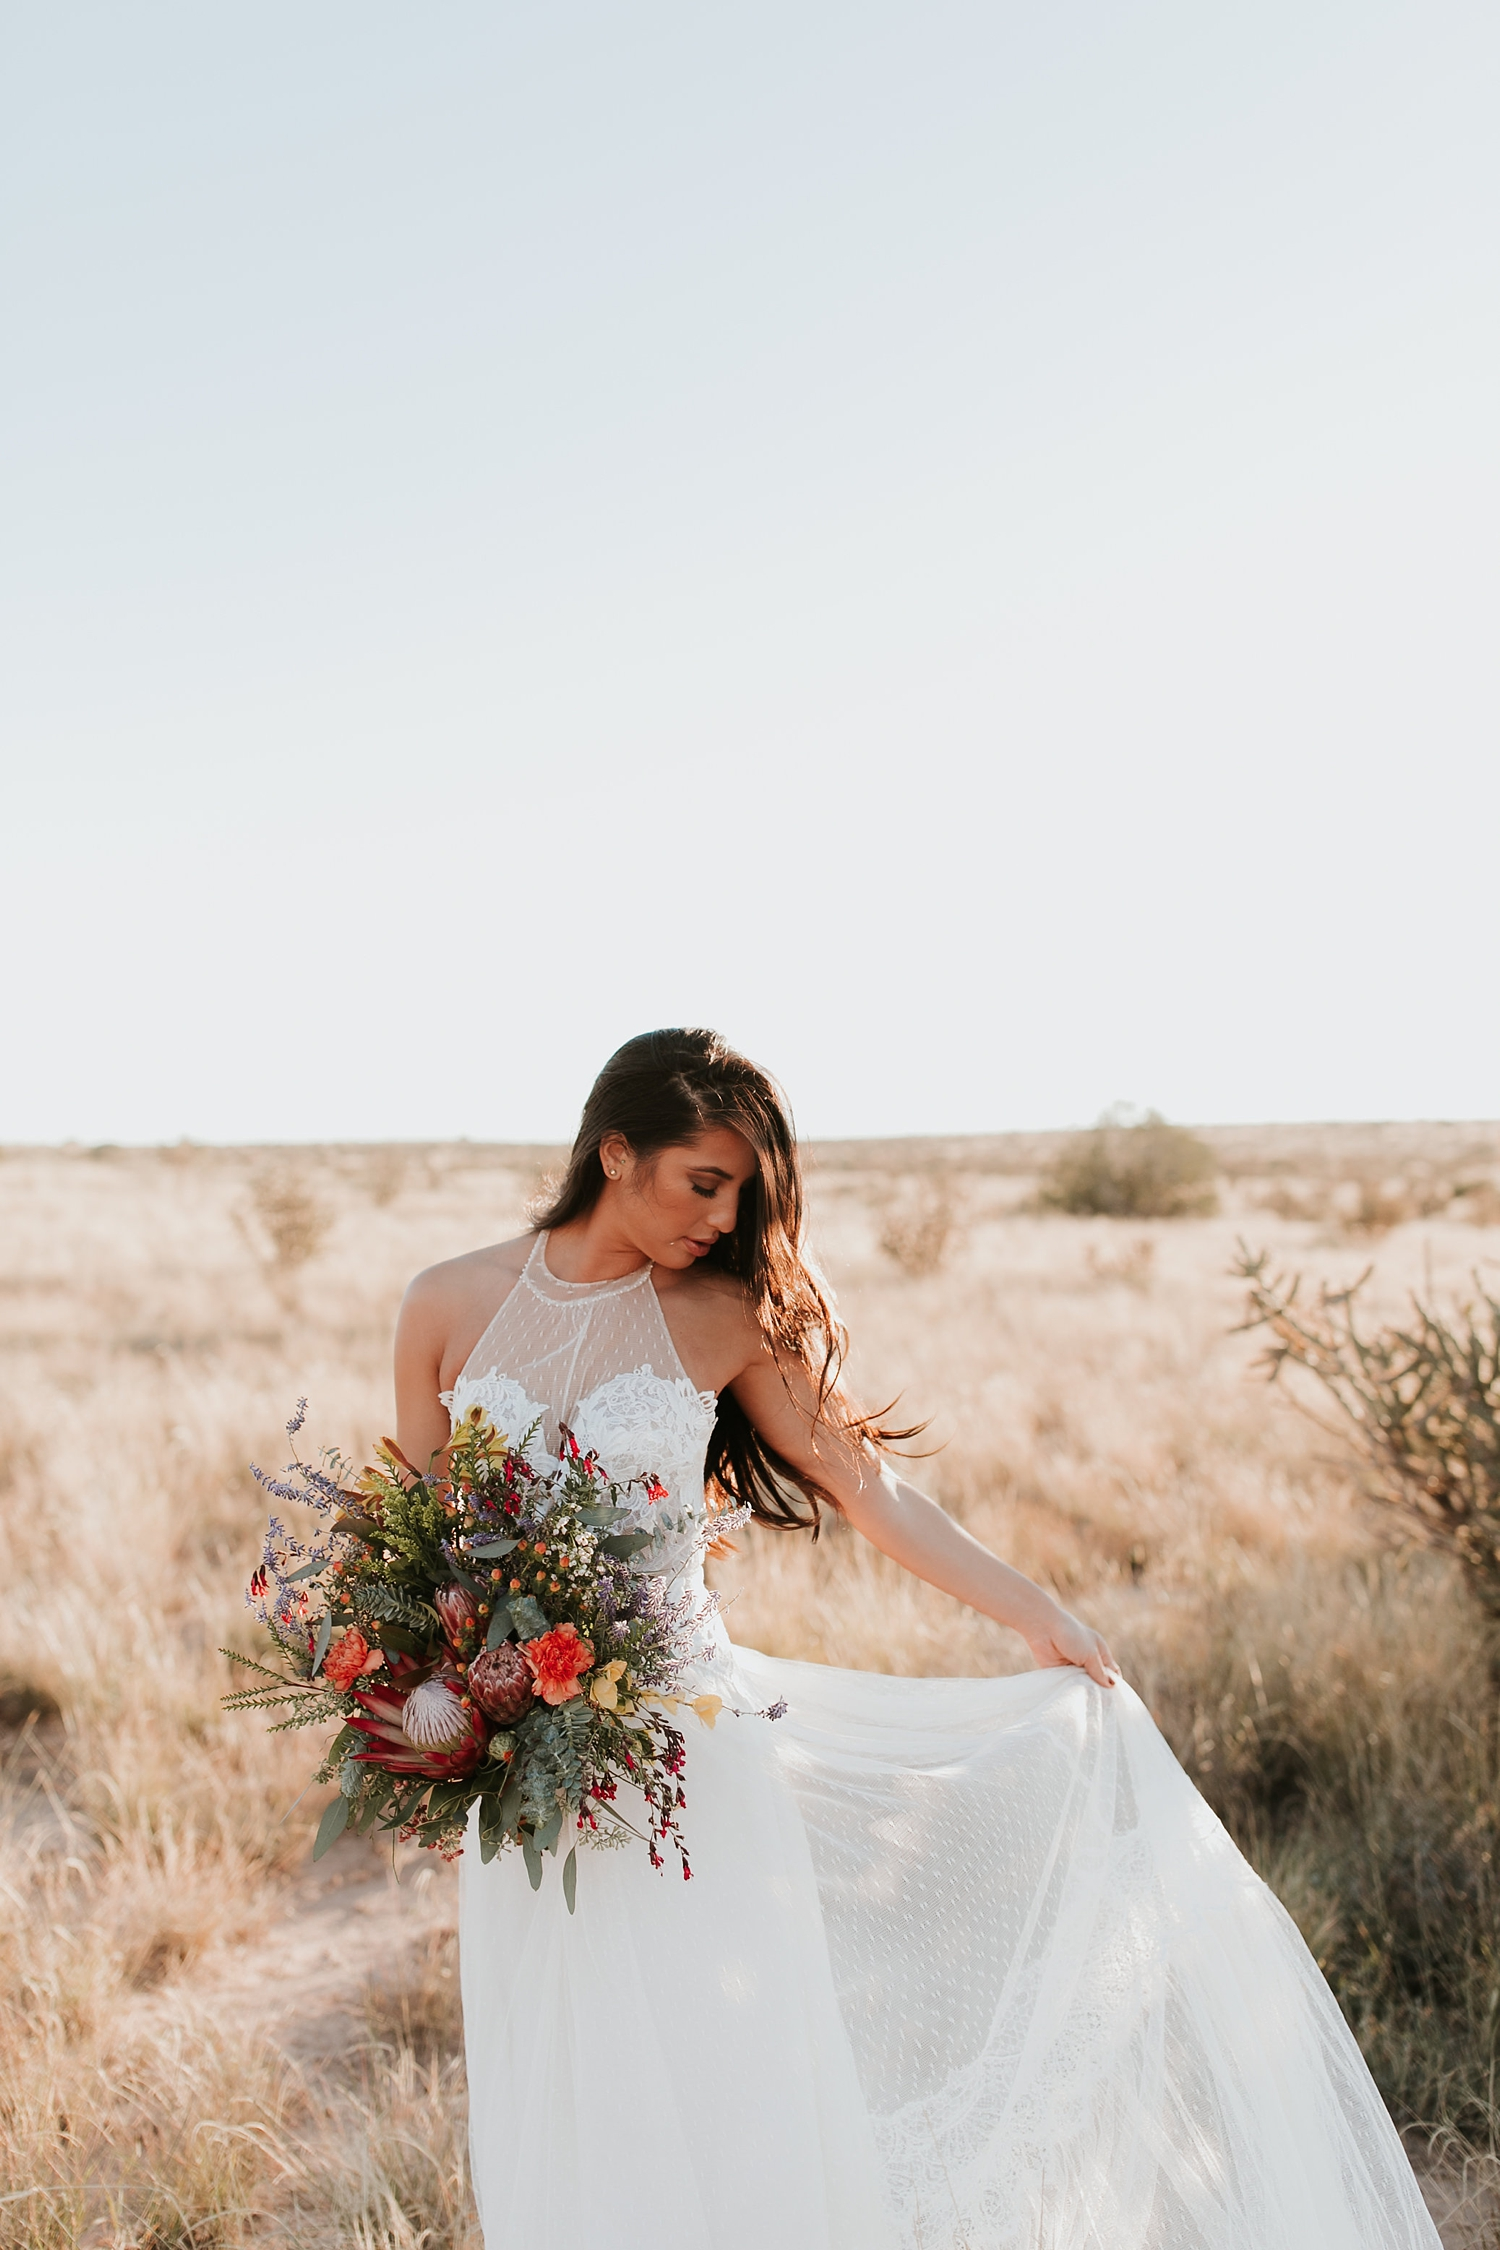 Alicia+lucia+photography+-+albuquerque+wedding+photographer+-+santa+fe+wedding+photography+-+new+mexico+wedding+photographer+-+new+mexico+bride+-+southwest+bridal+session+-+desert+bridal+session+-+santa+fe+bride+-+albuquerque+bride_0015.jpg